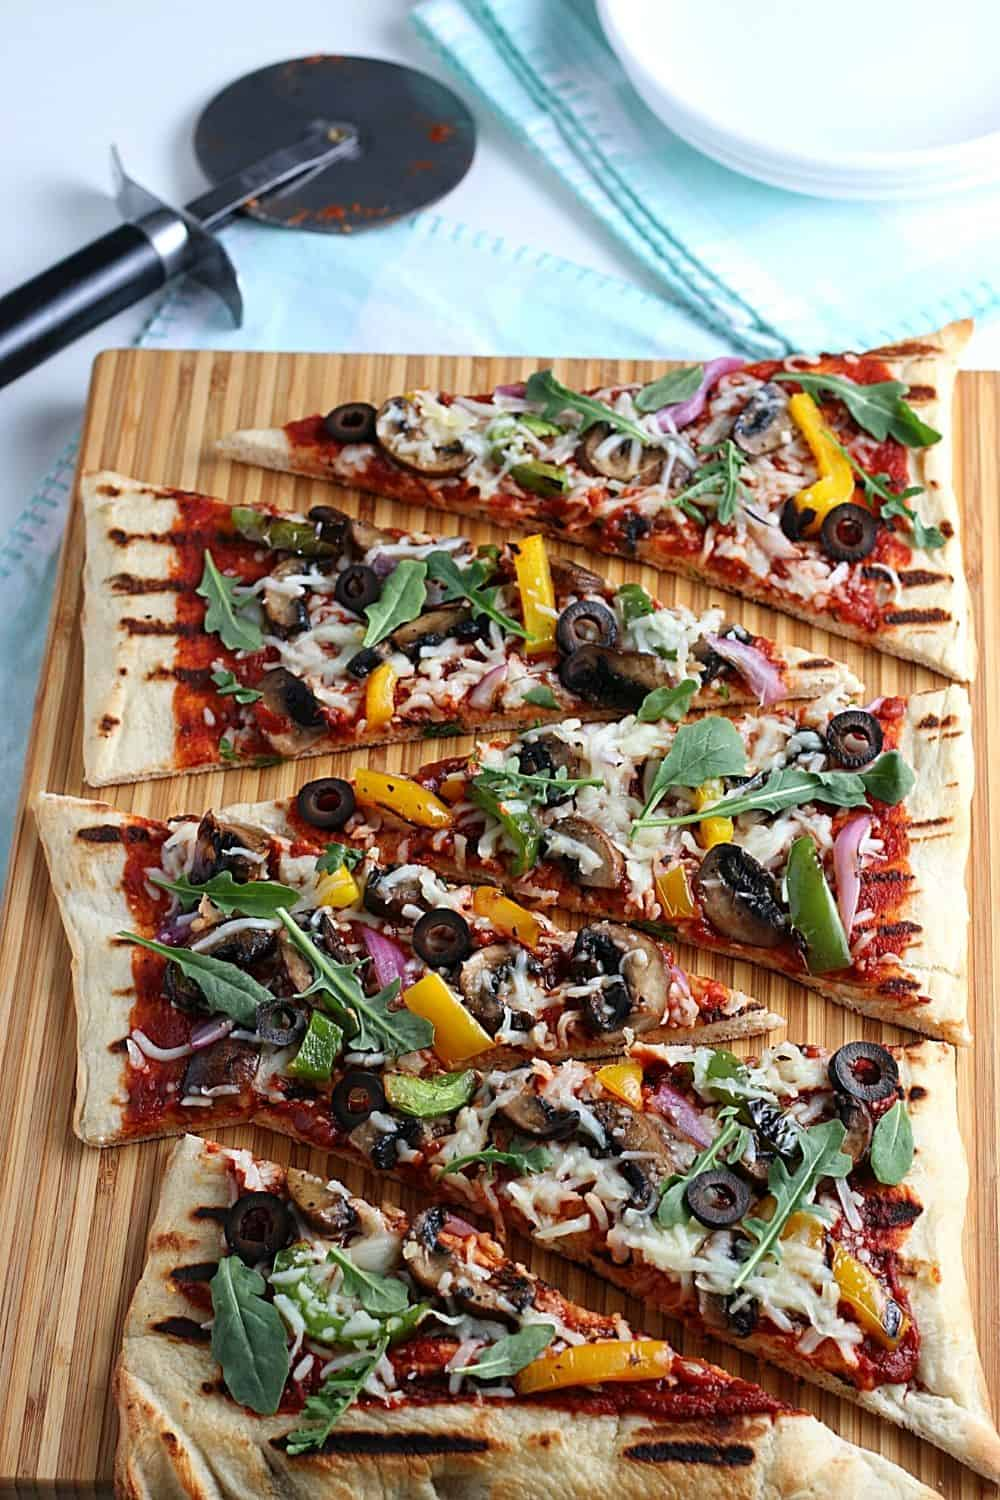 It's time to fire up the grill and turn a traditional pizza recipe into an easy and delicious Grilled Pizza. Here's How To Make the Perfect Grilled Pizza recipe.